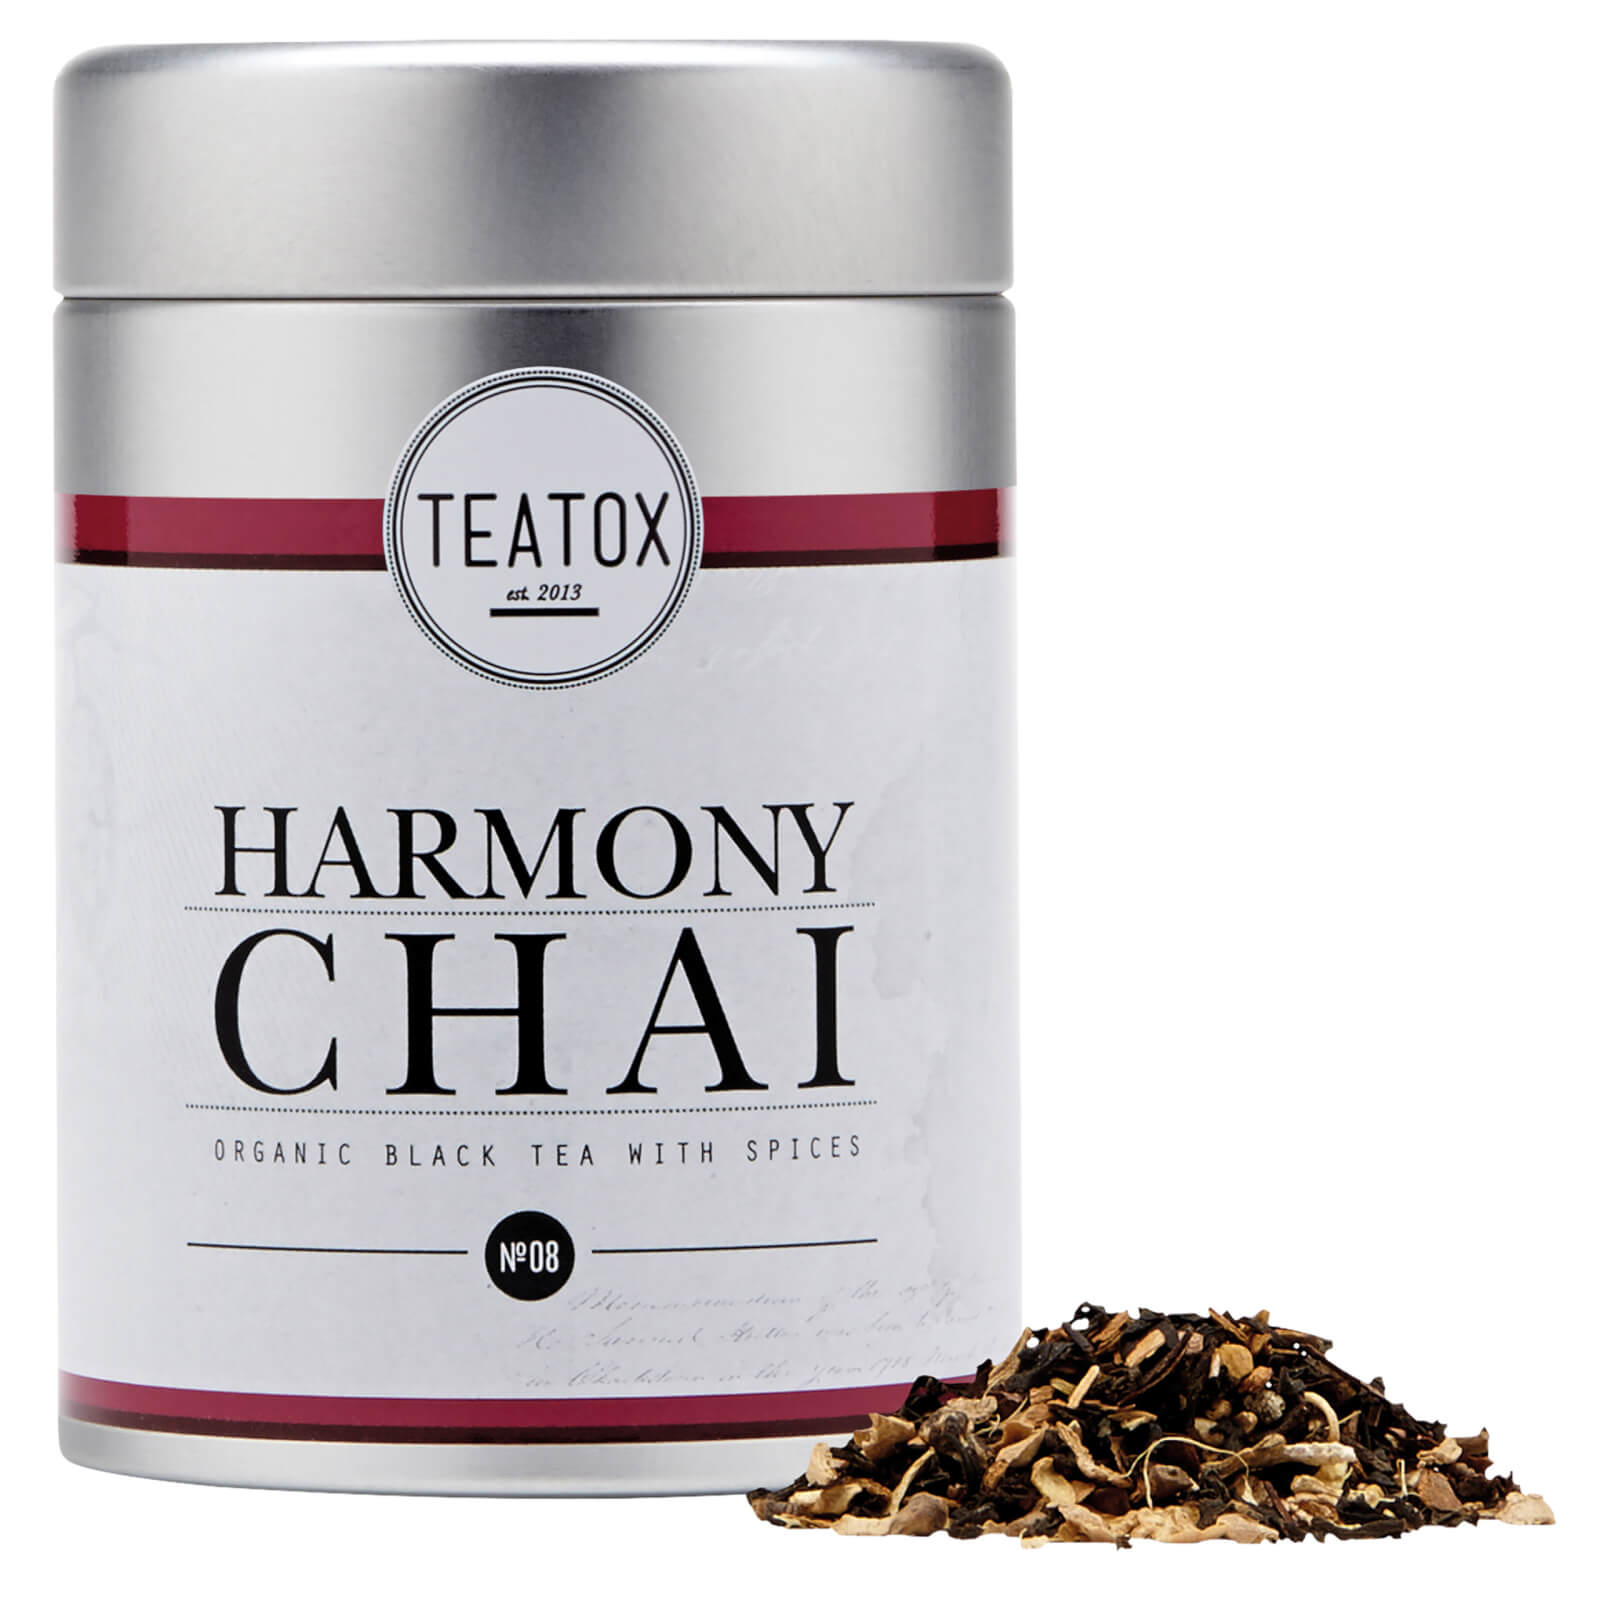 Teatox Harmony Chai Organic Black Tea with Spices (90g)